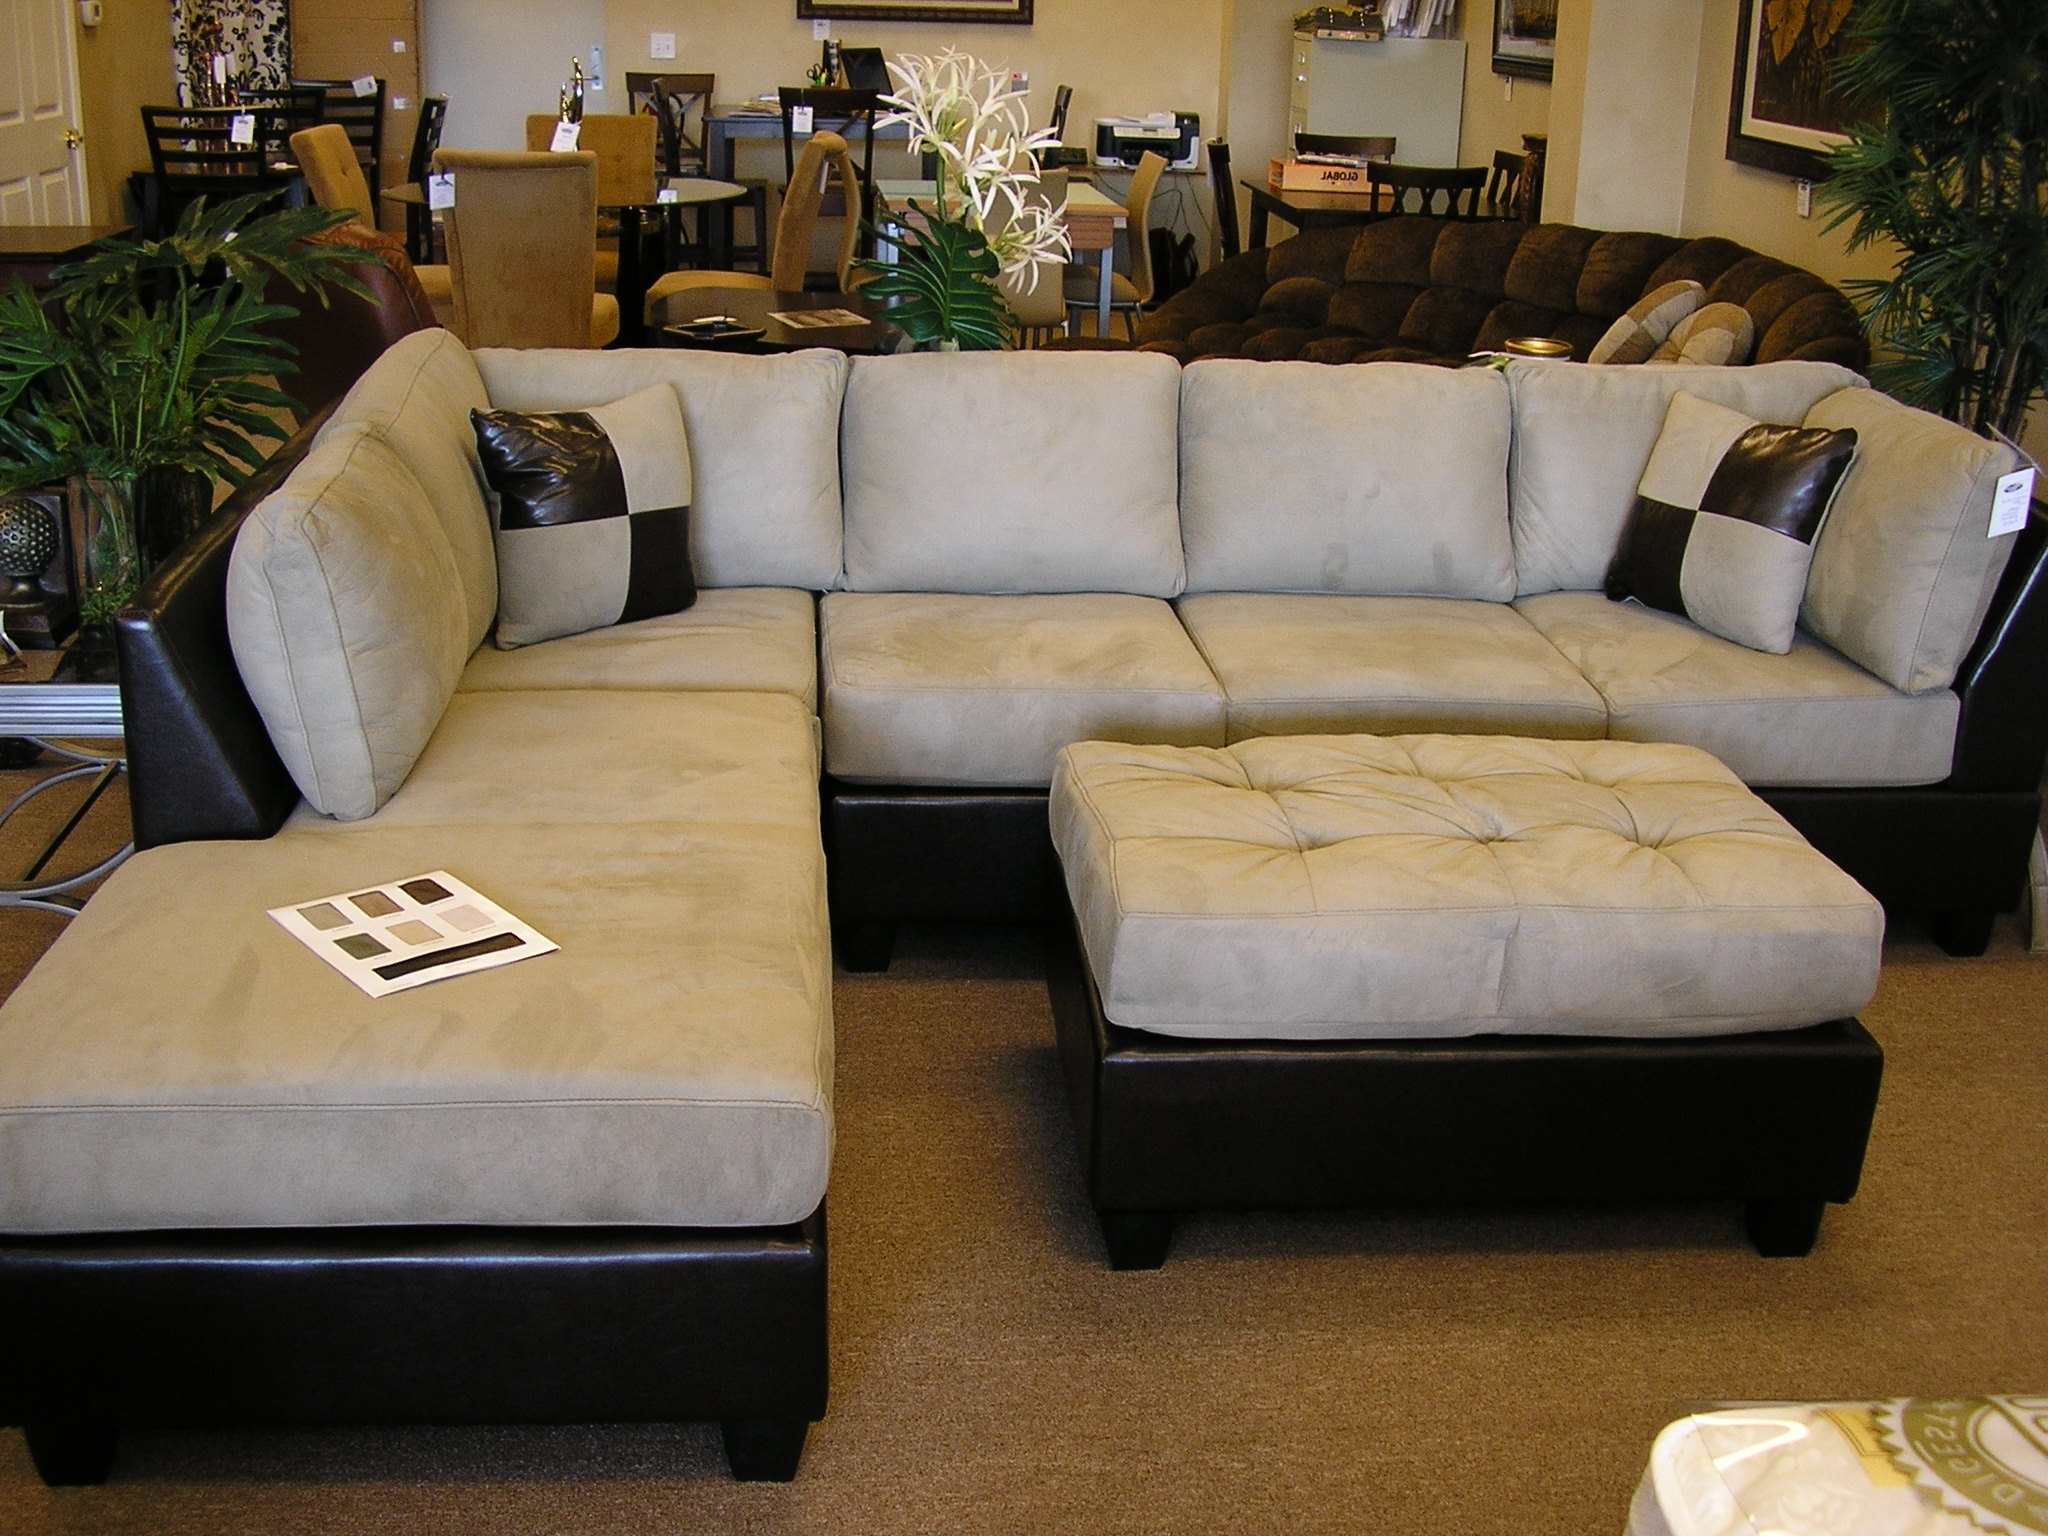 Leather Sectionals With Chaise And Ottoman Regarding Popular Chaise Lounges : Sofa Chaise Recliner Sofas L Shaped Large With (View 6 of 20)